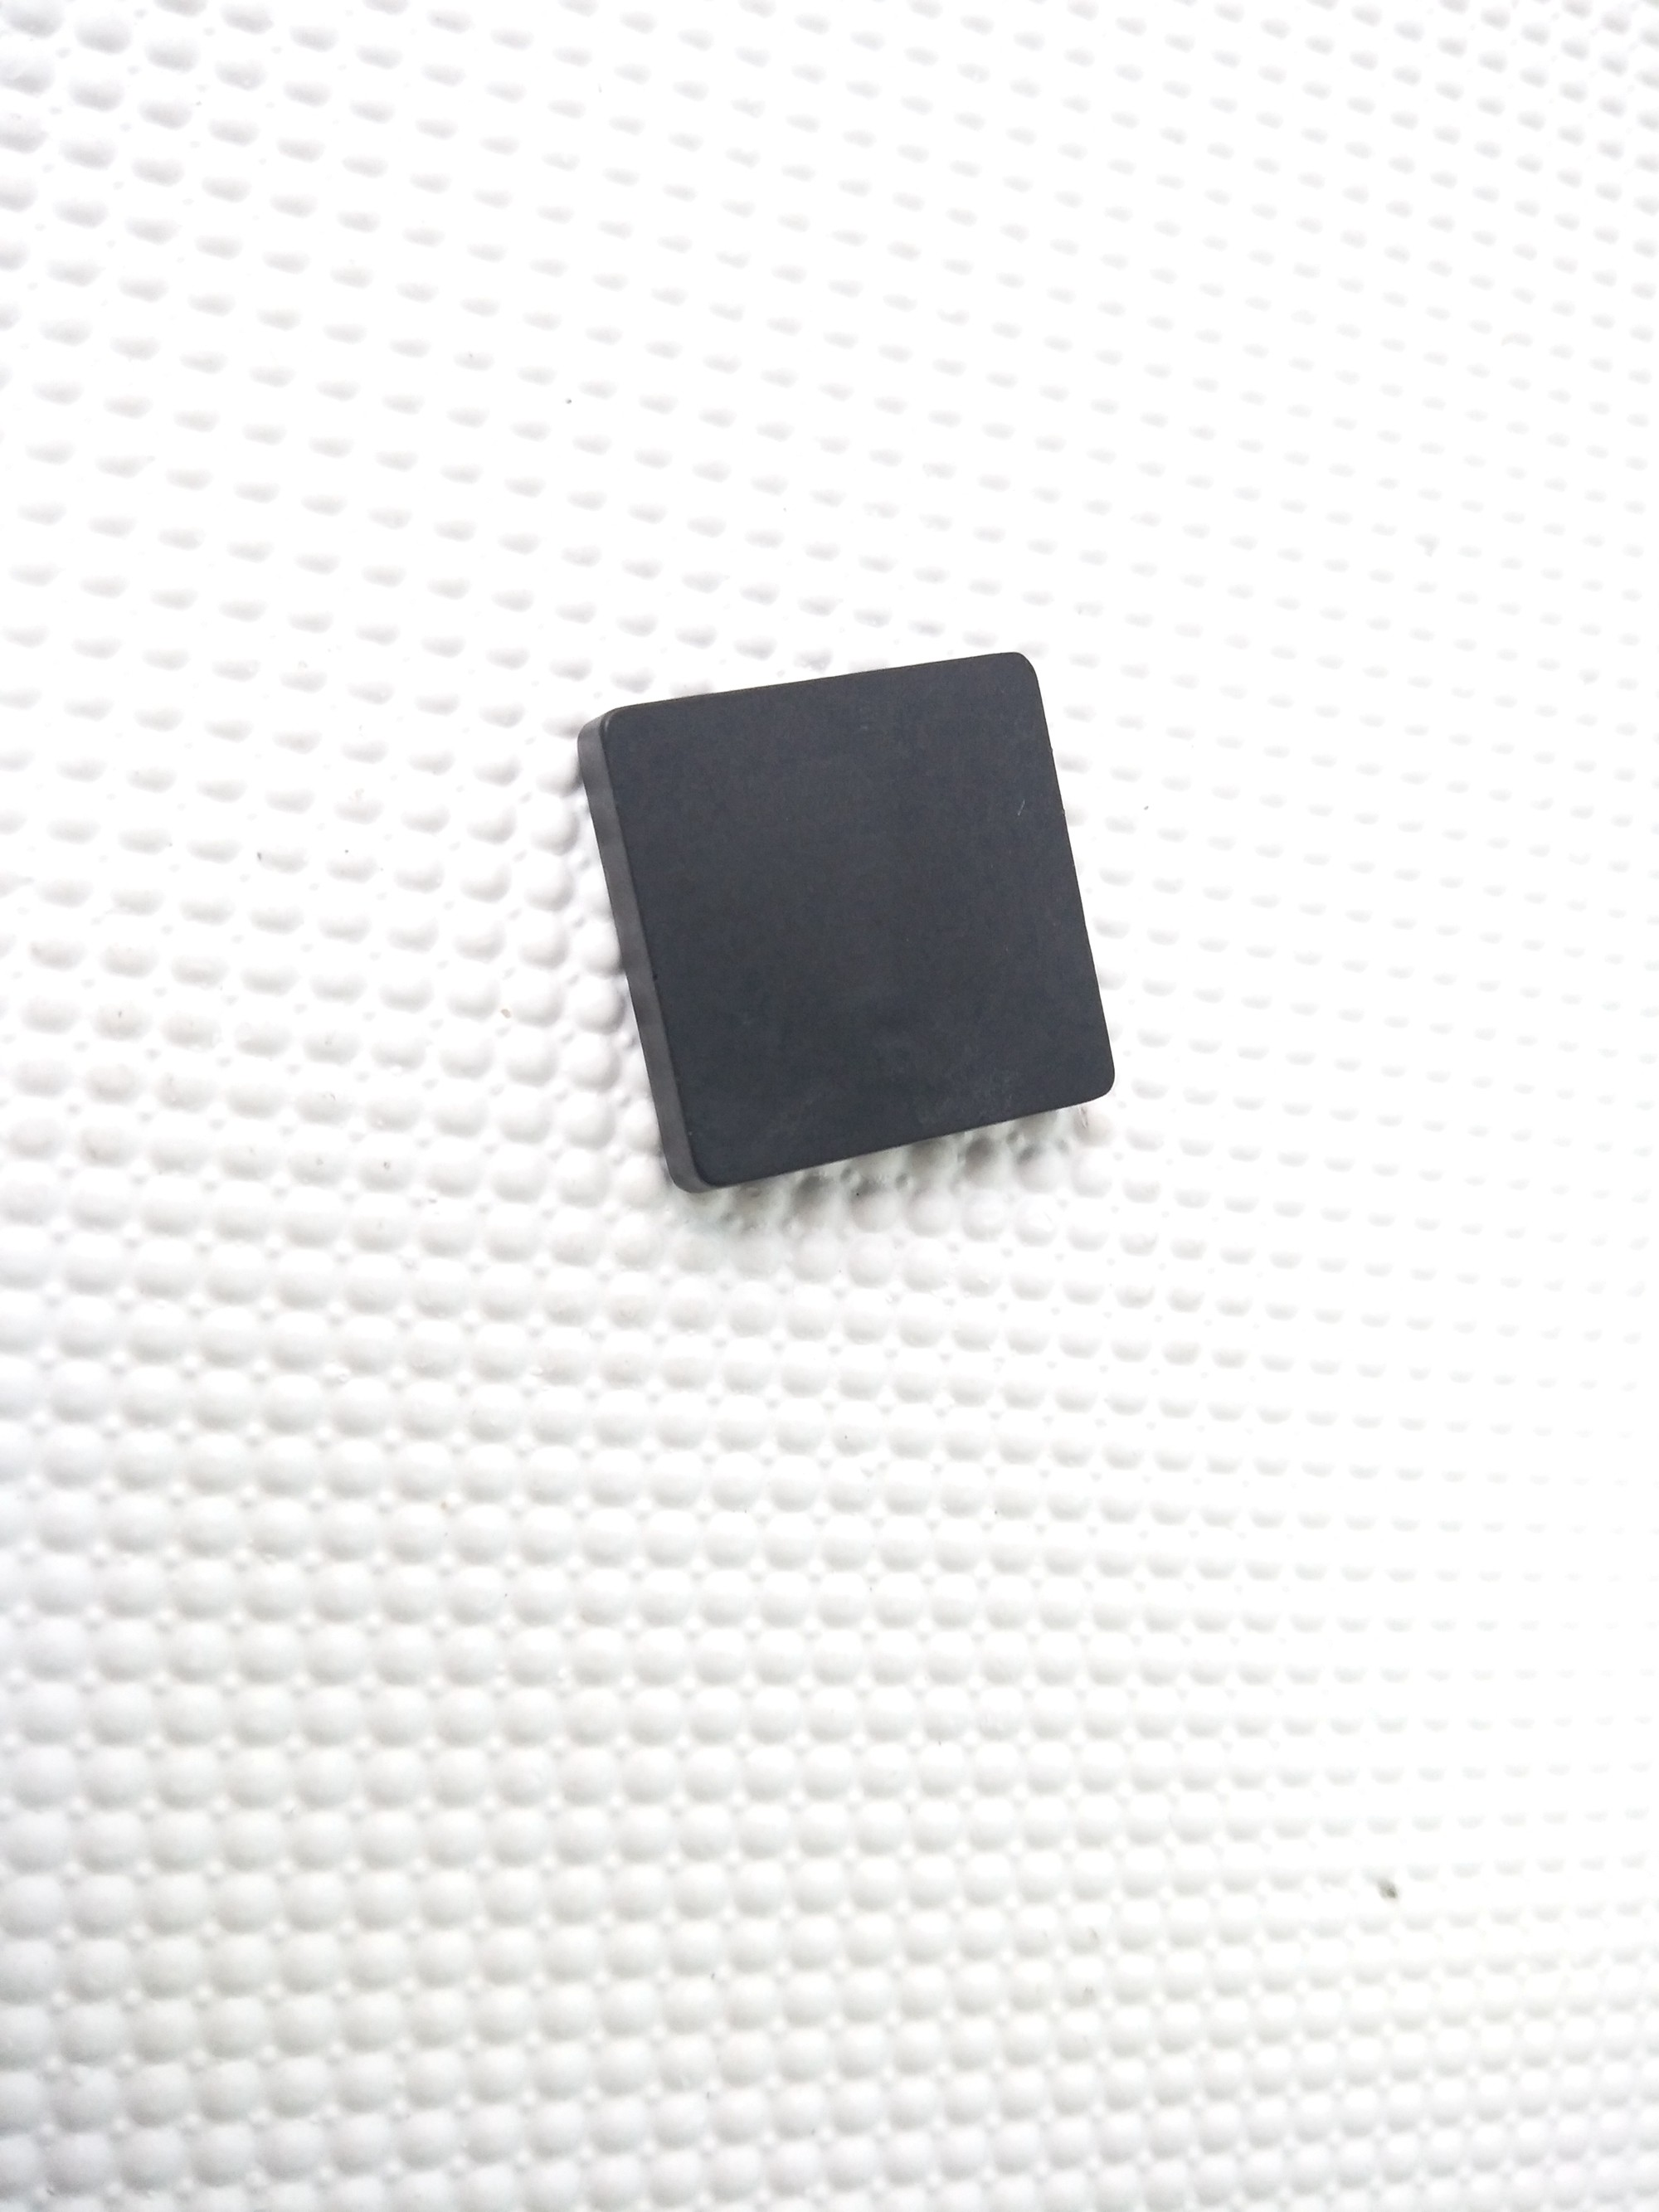 UHF 860~960MHz Anti-metal tag SM314 for warehouse management,Auto Parts, Mold Management,Industrial Manufacturing